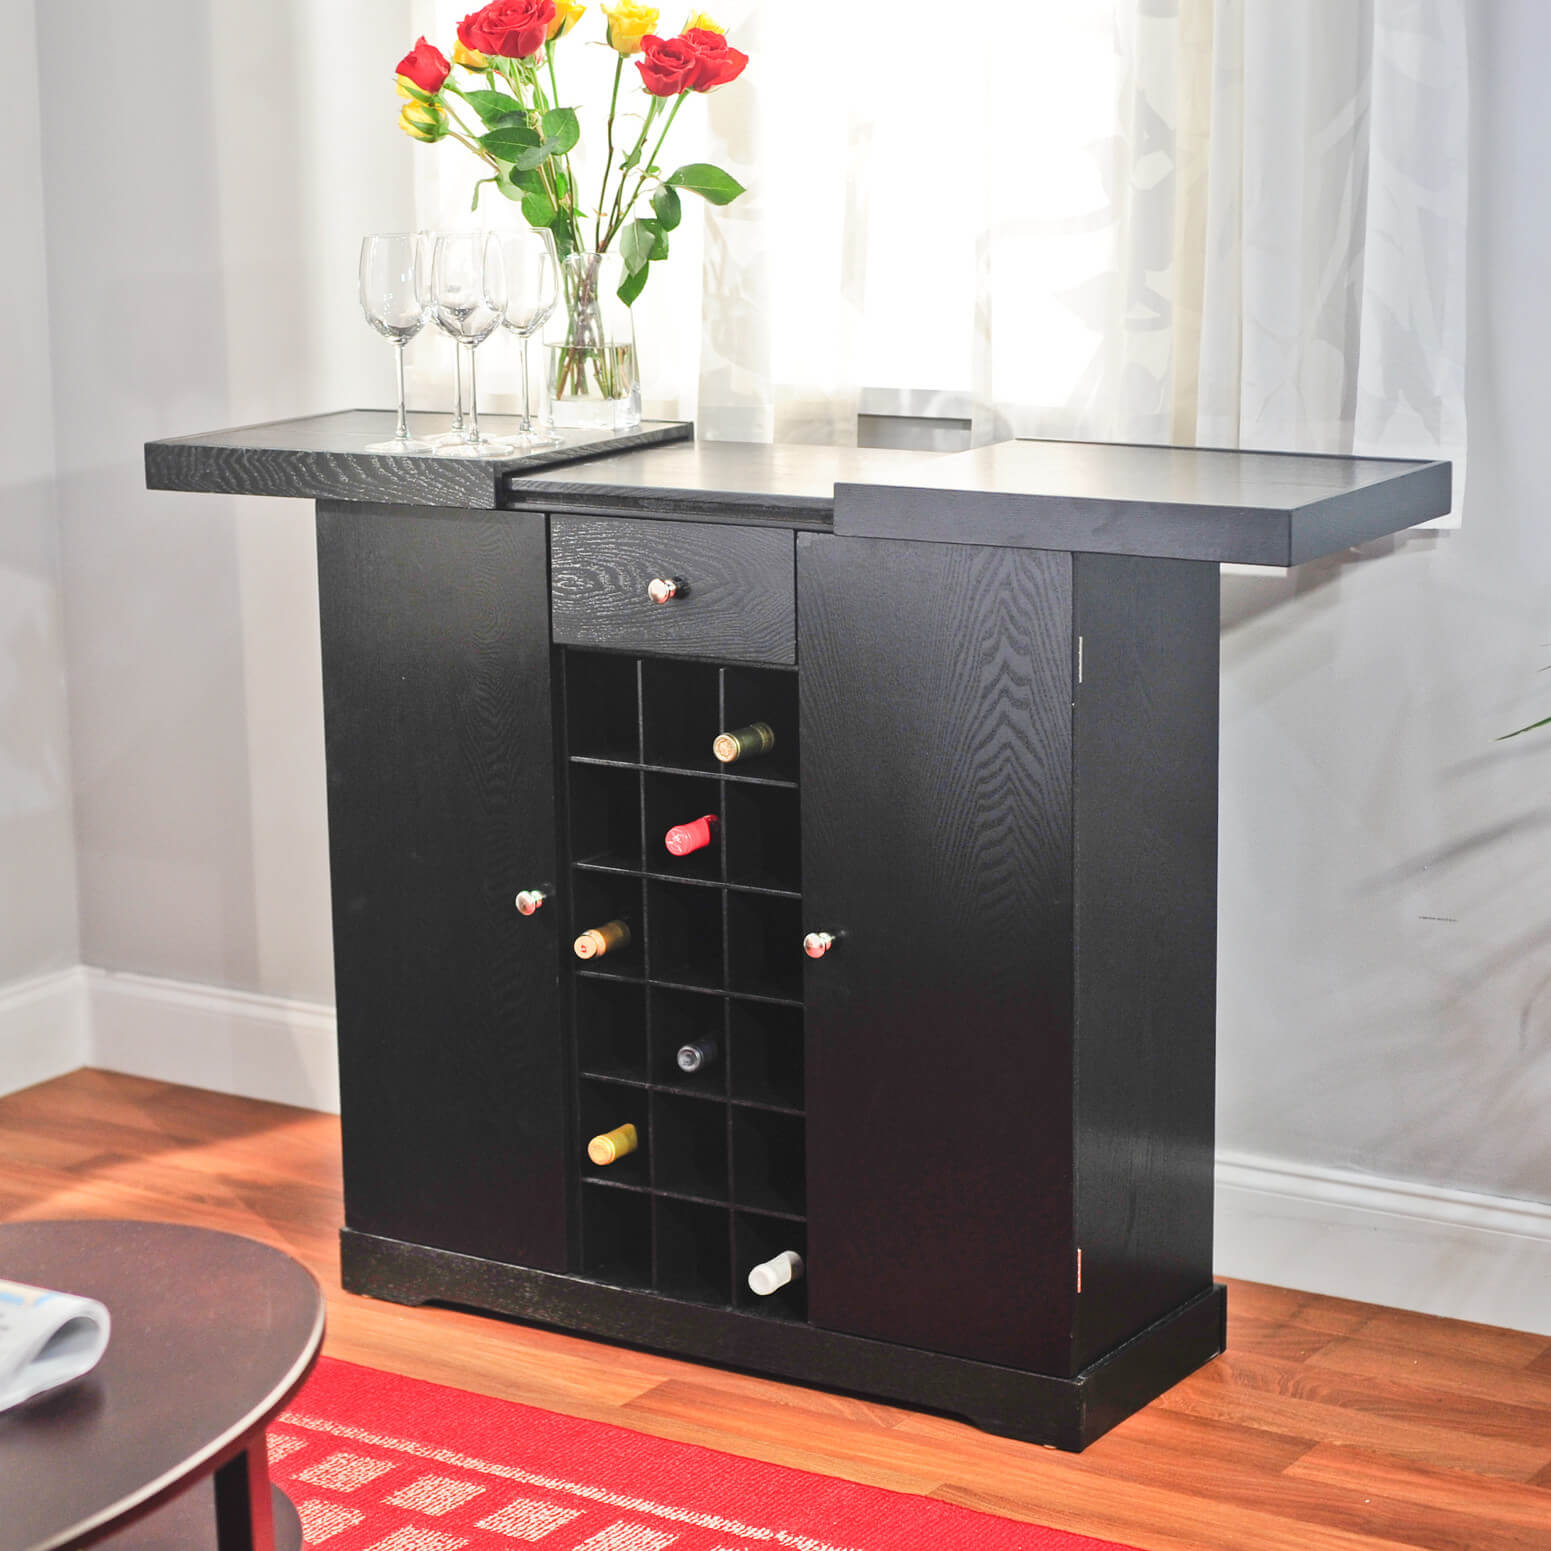 This Is A Classic Cabinet Instead Of A Bar. We Included It In This Gallery .